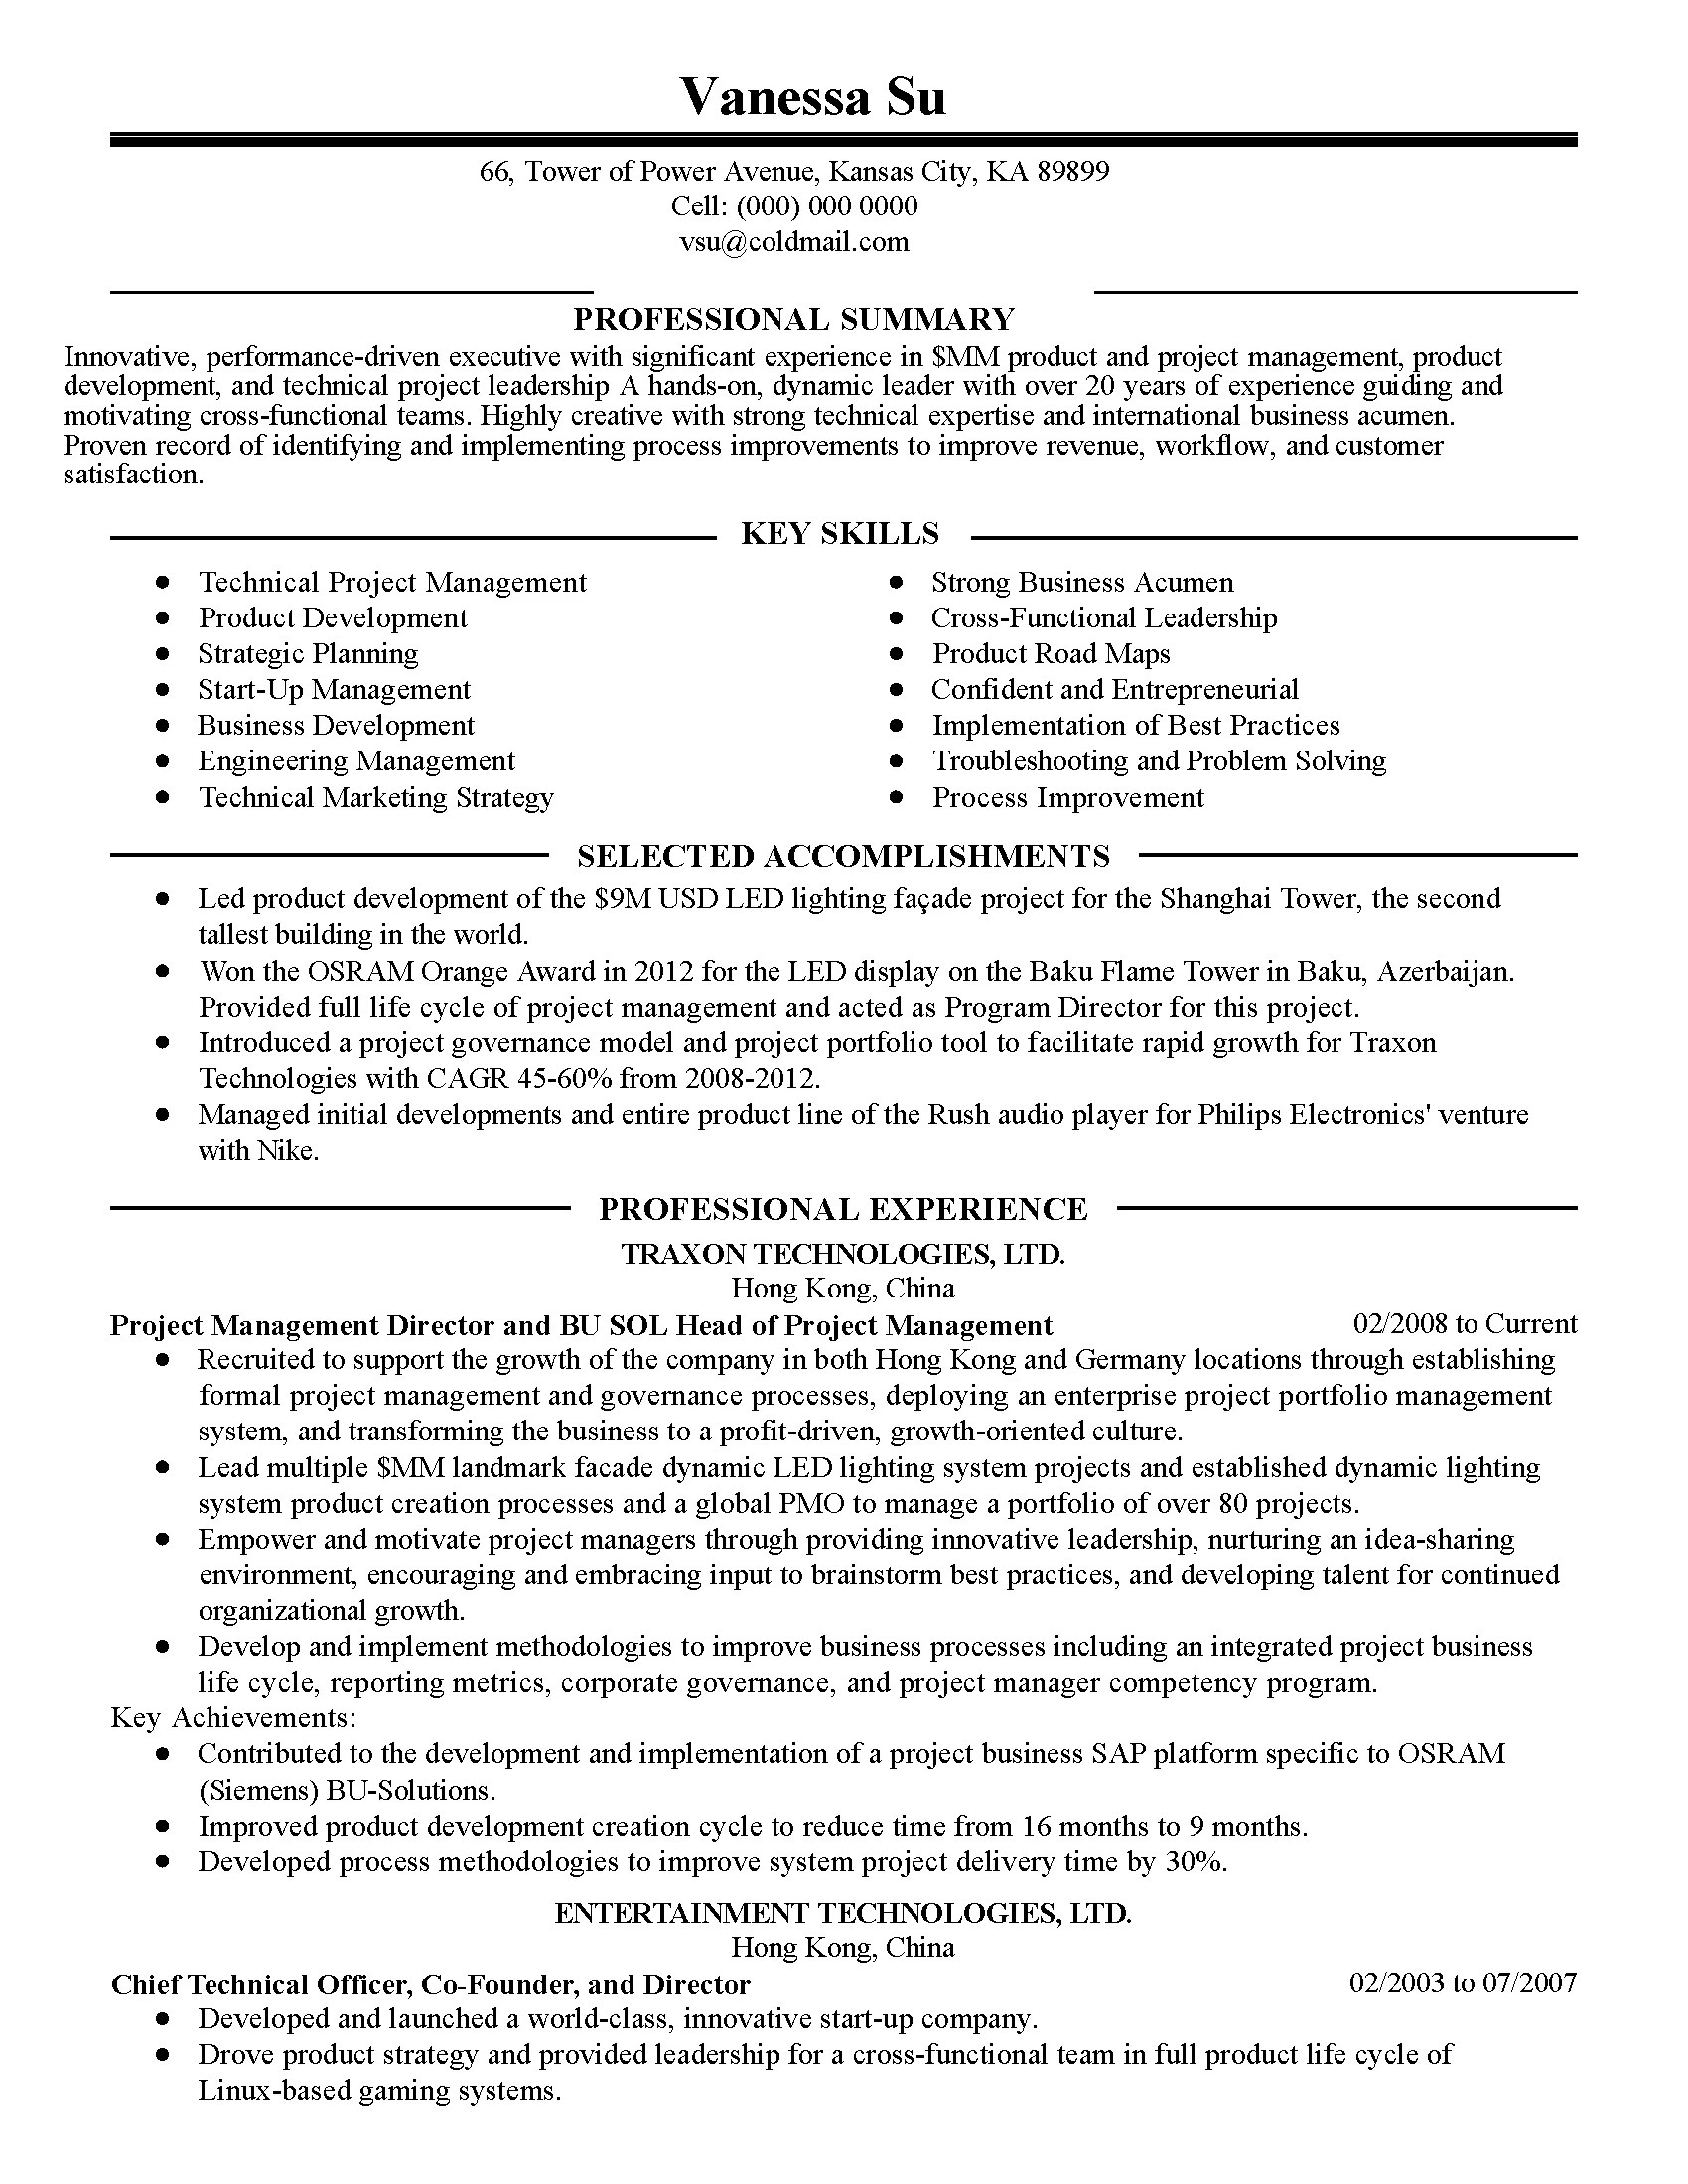 Project Management Experience On Resume Professional Project Management Director Templates To